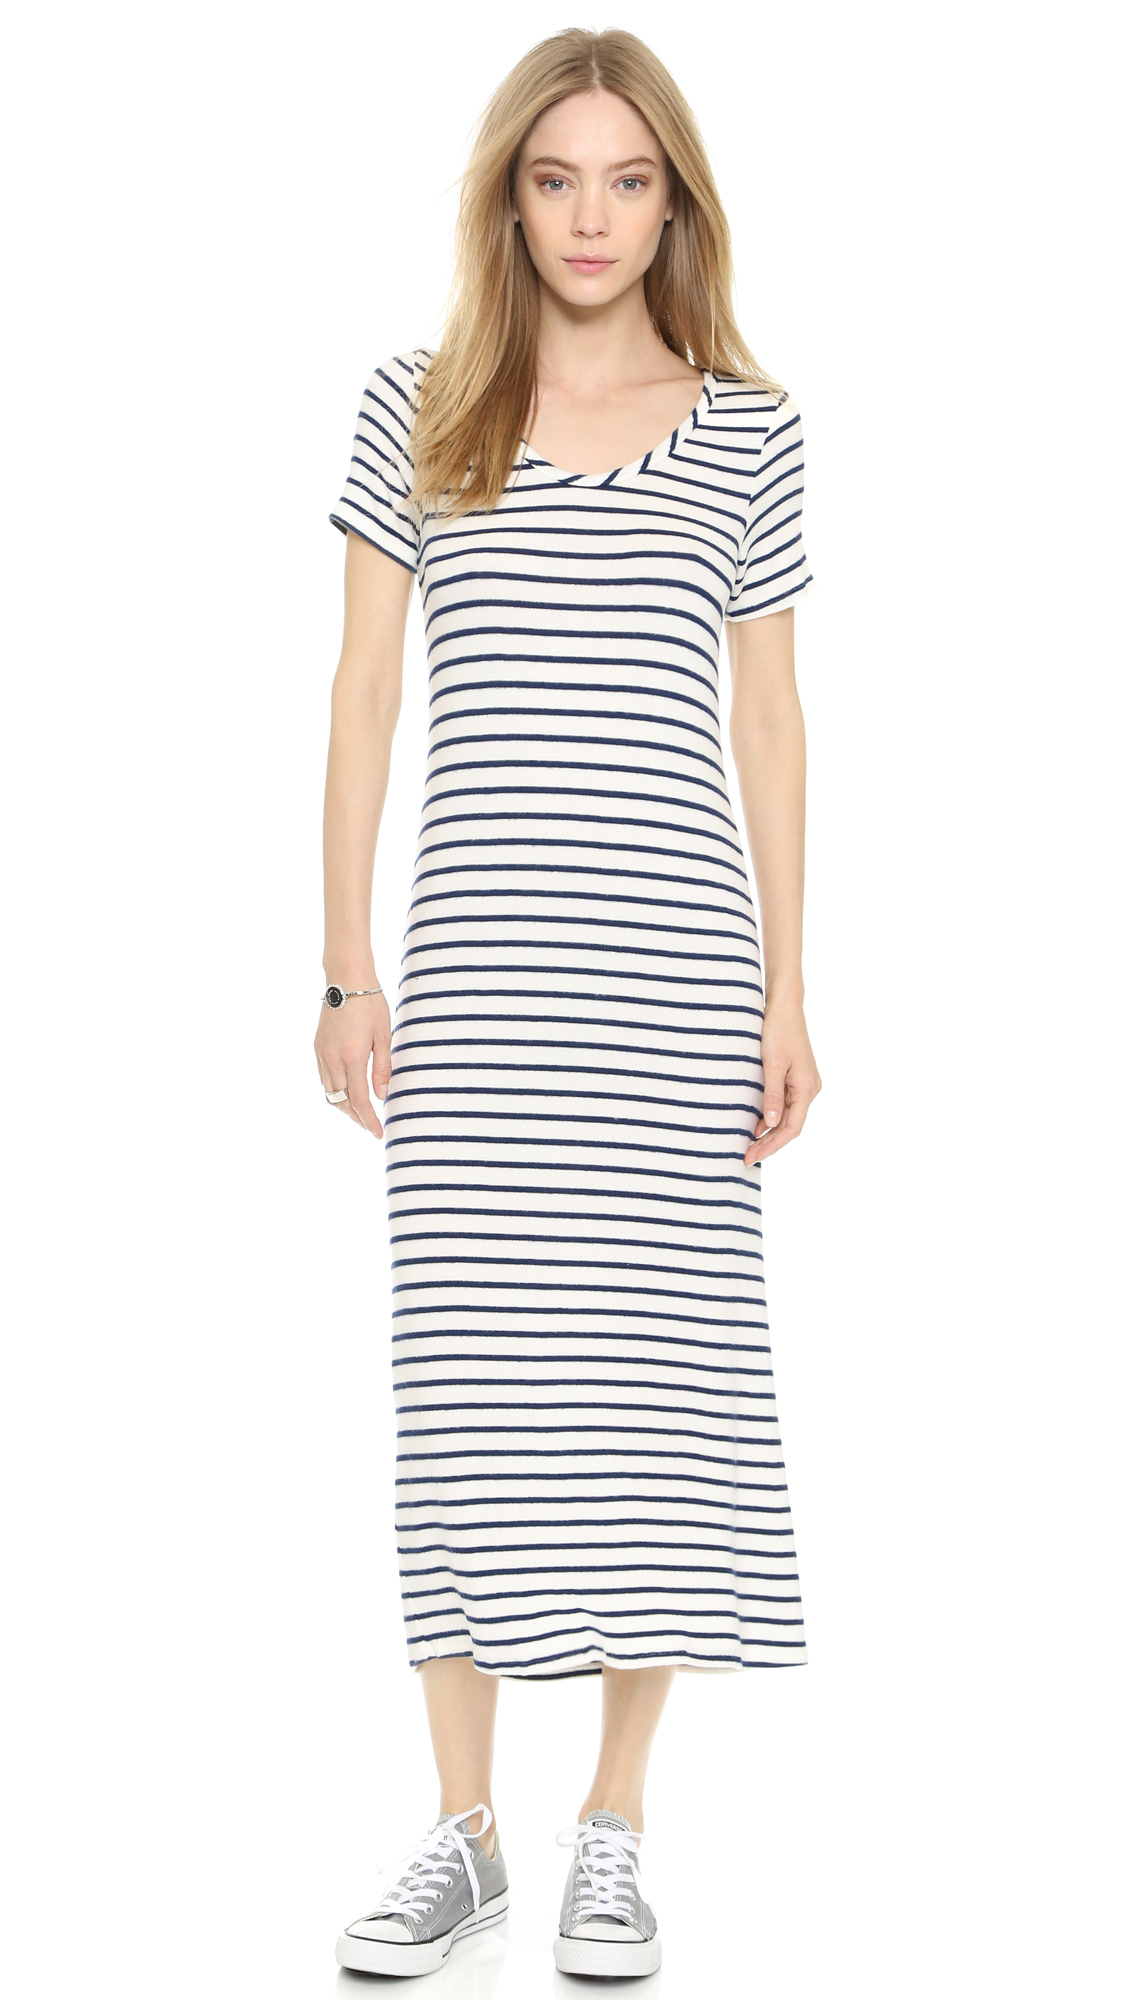 Hye Park and Lune Capella Stripe Dress in White - Lyst 42b338e03